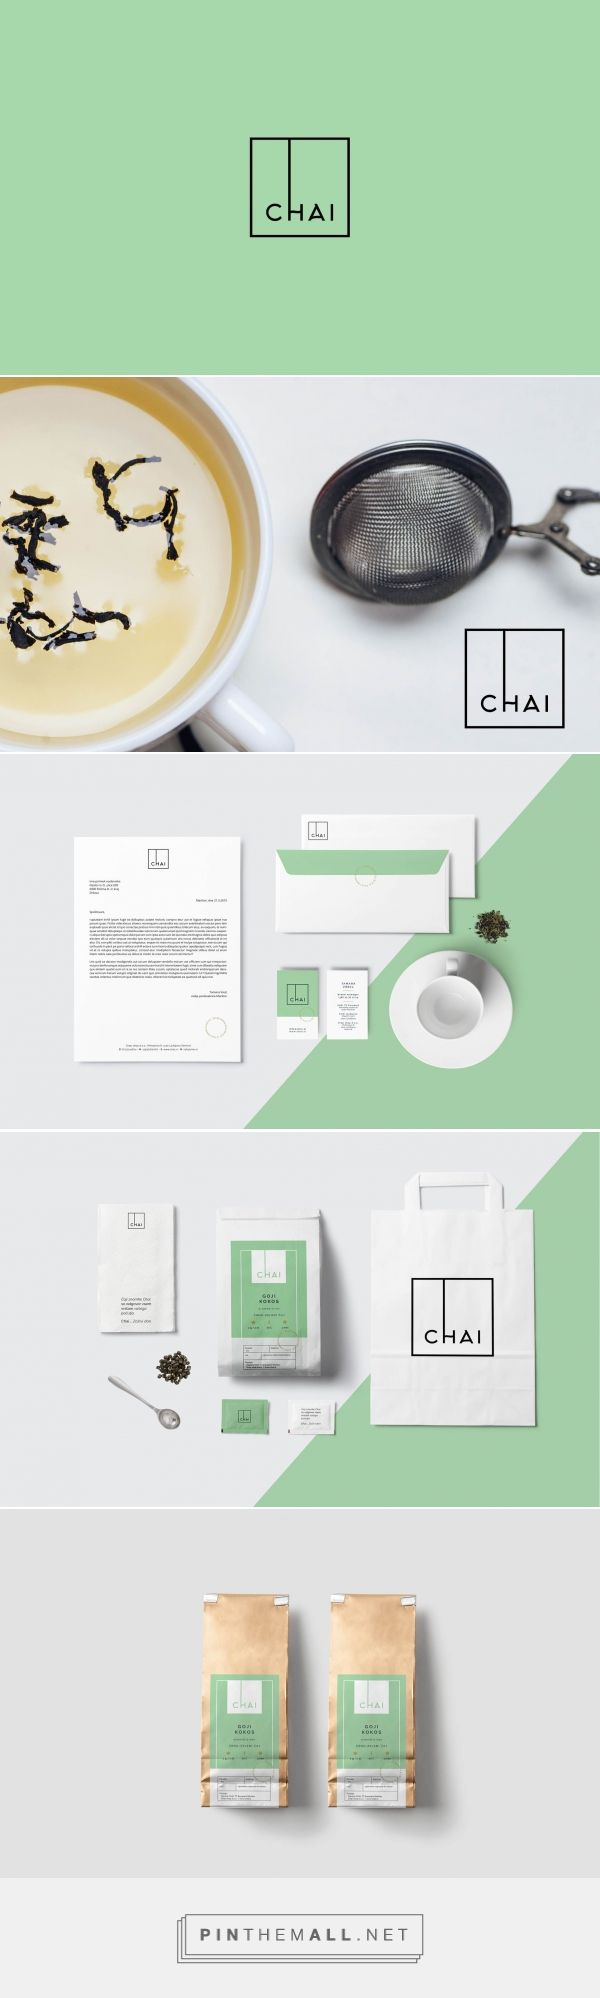 Chai Tea Shop Branding by WeDesignStuff | Fivestar Branding – Design and Branding Agency & Inspiration Gallery